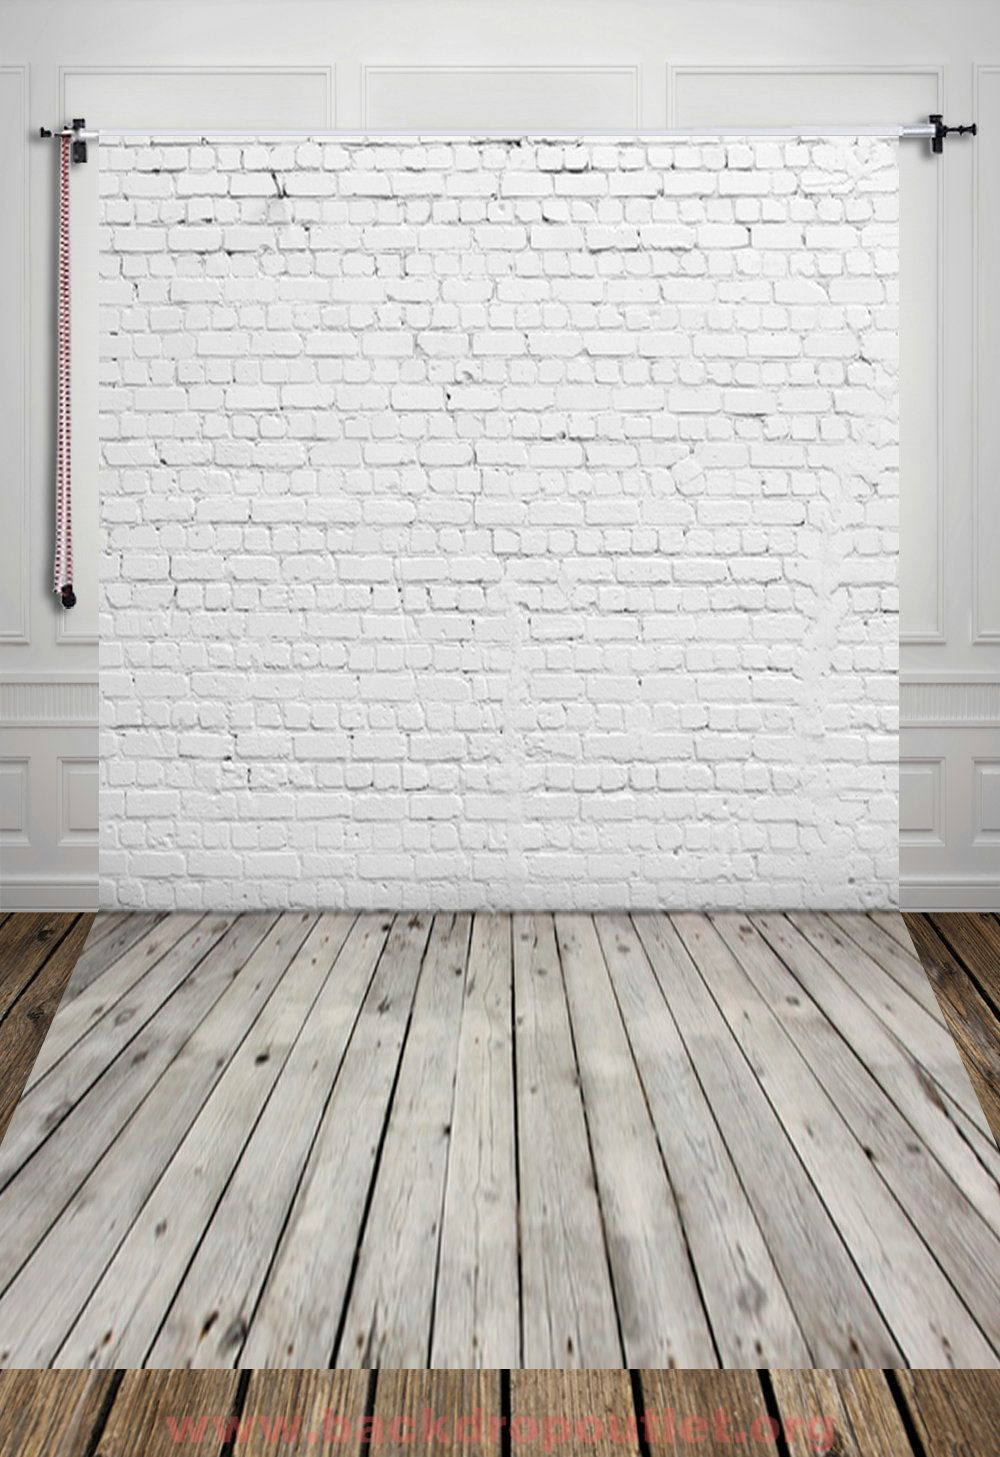 Photography Digital Printed Backdrop White Brick Wall With Gray Wooden Floor Background For Photo Studio Shoot Props Molduras